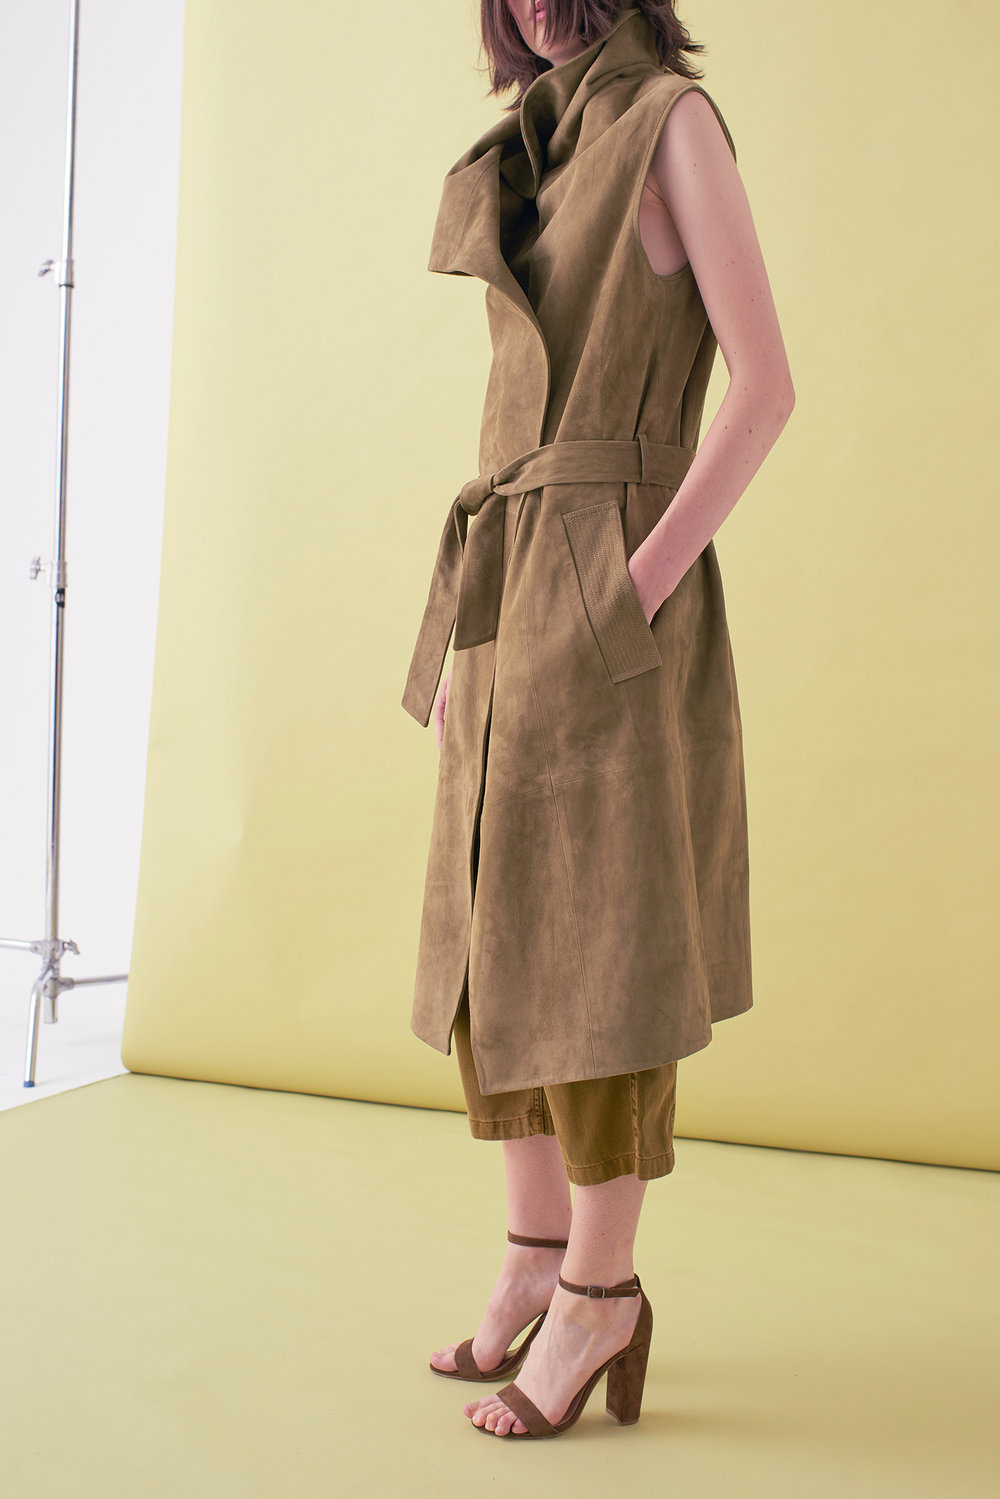 Sarah_Swann_SS17_02_Suede_Sleeveless_Long_Jacket_Olive_S.jpg